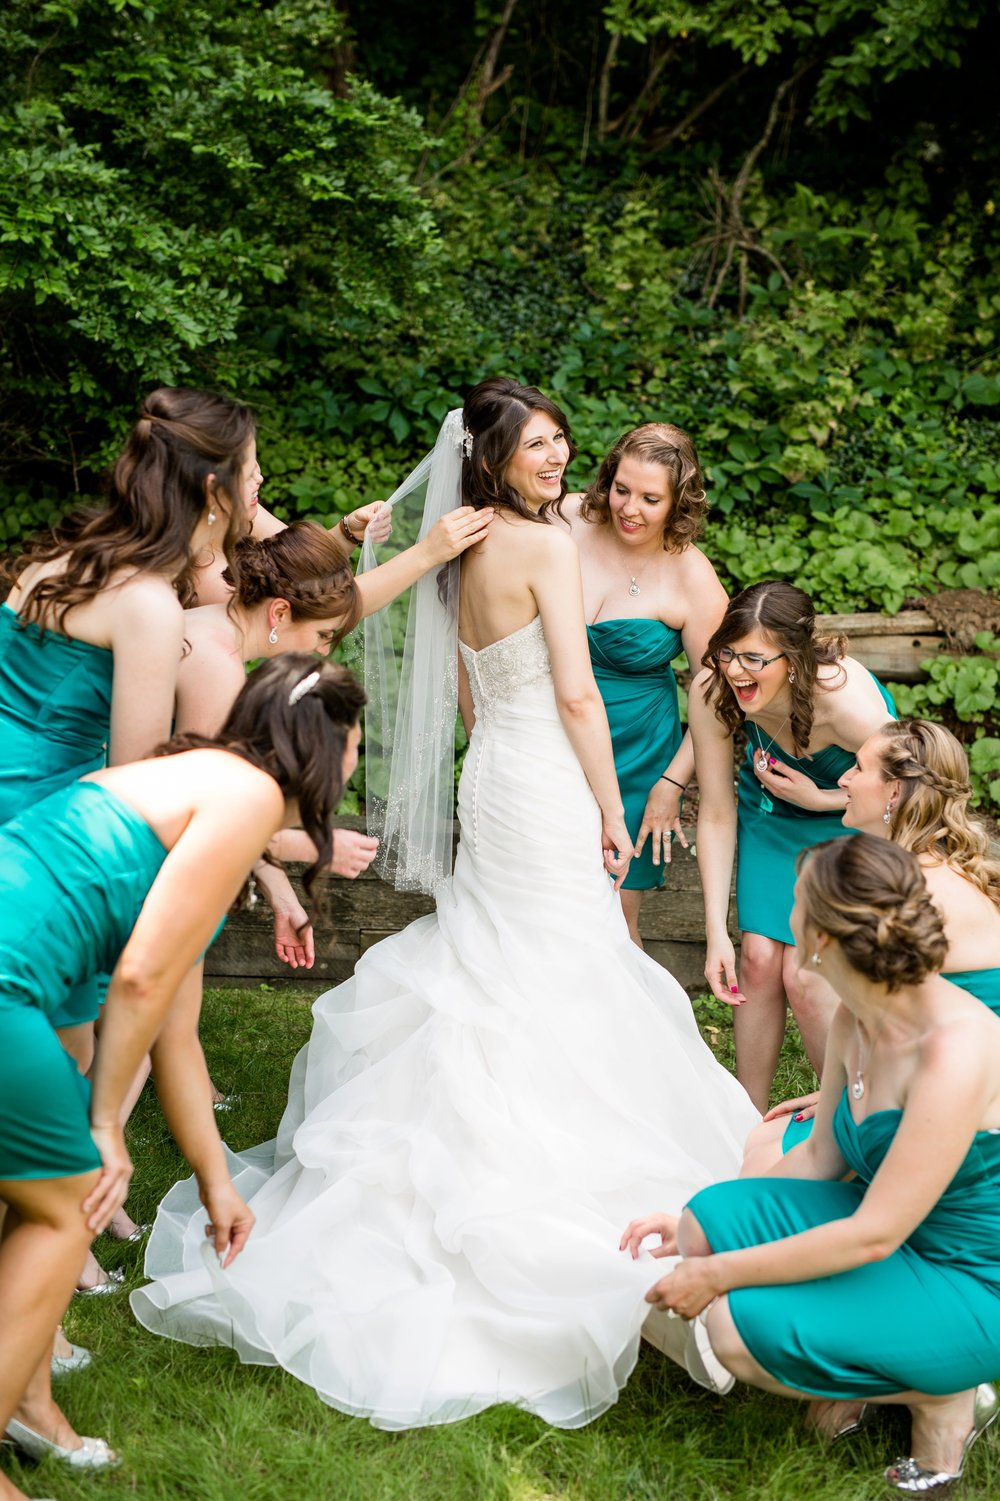 pittsburgh wedding photographer, the best pittsburgh wedding photographers, pittsburgh wedding venues, twelve oaks mansion wedding photos